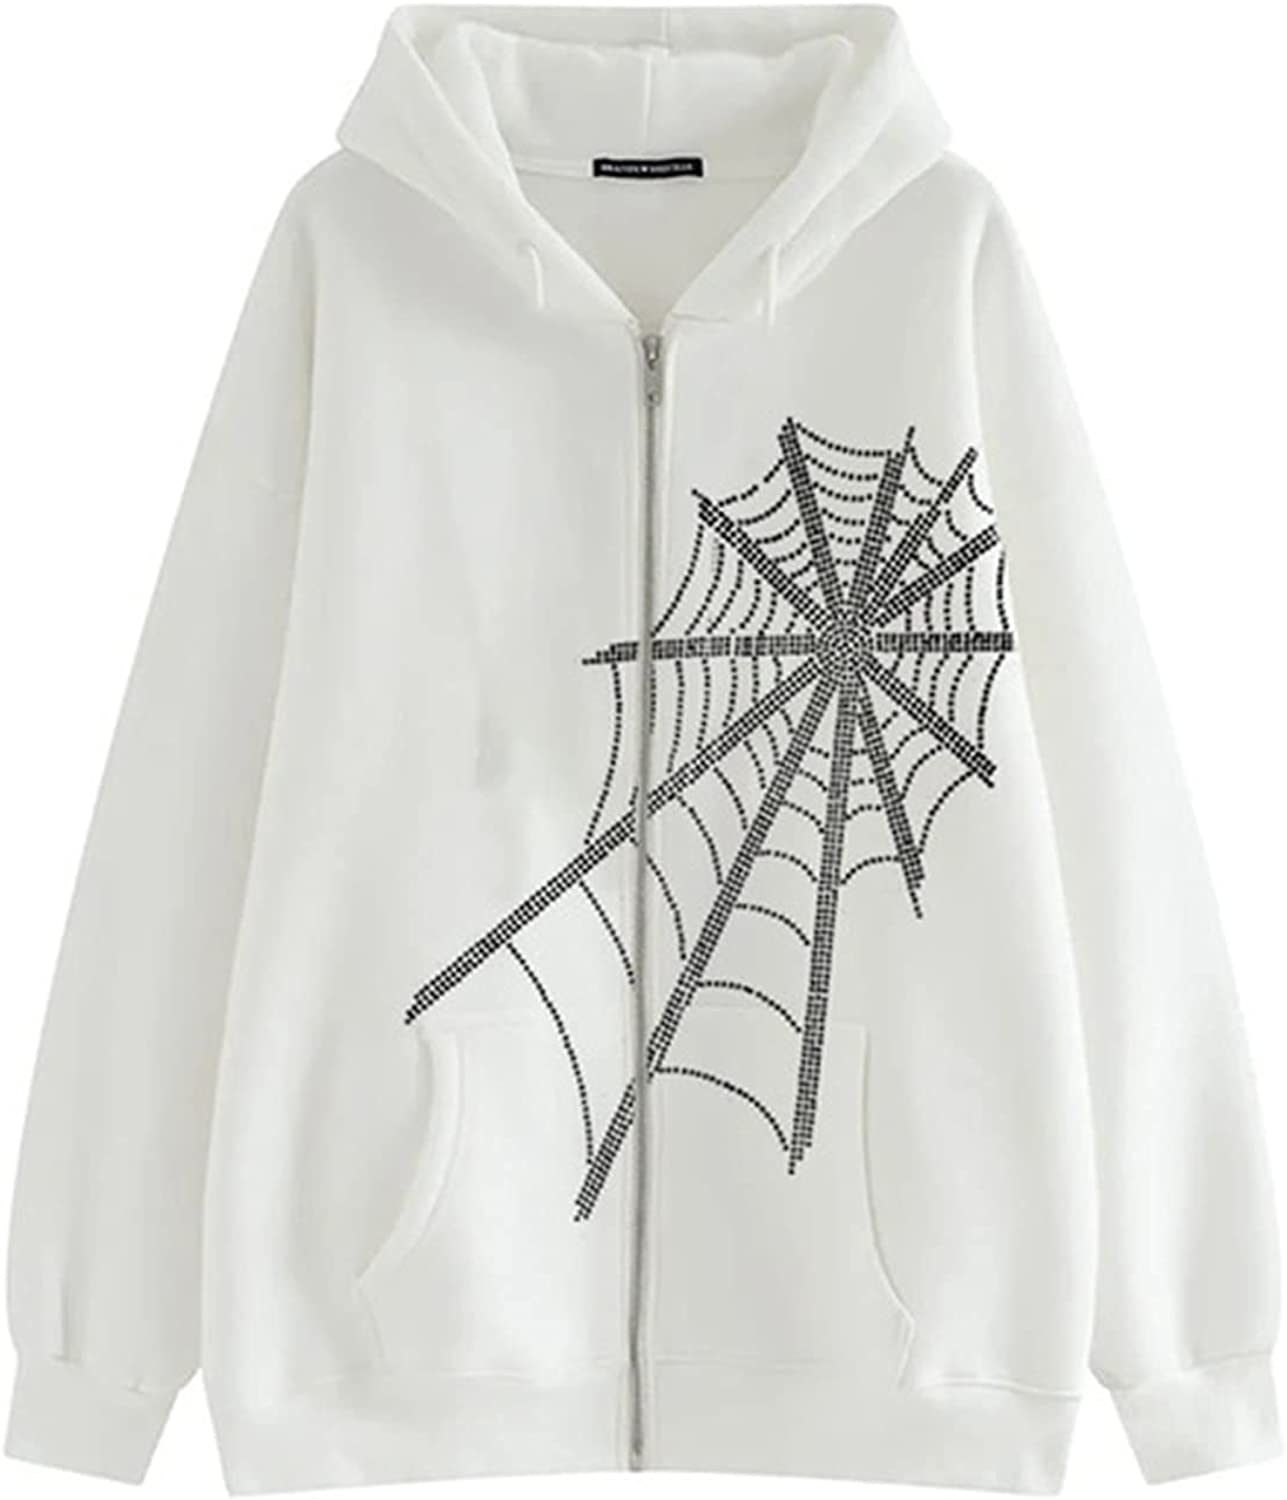 Sweatshirts for Women Casual Autumn Hooded Fashion Gothic Dark Loose Print Casual Full-Sleeve Tops Coat for Ladies